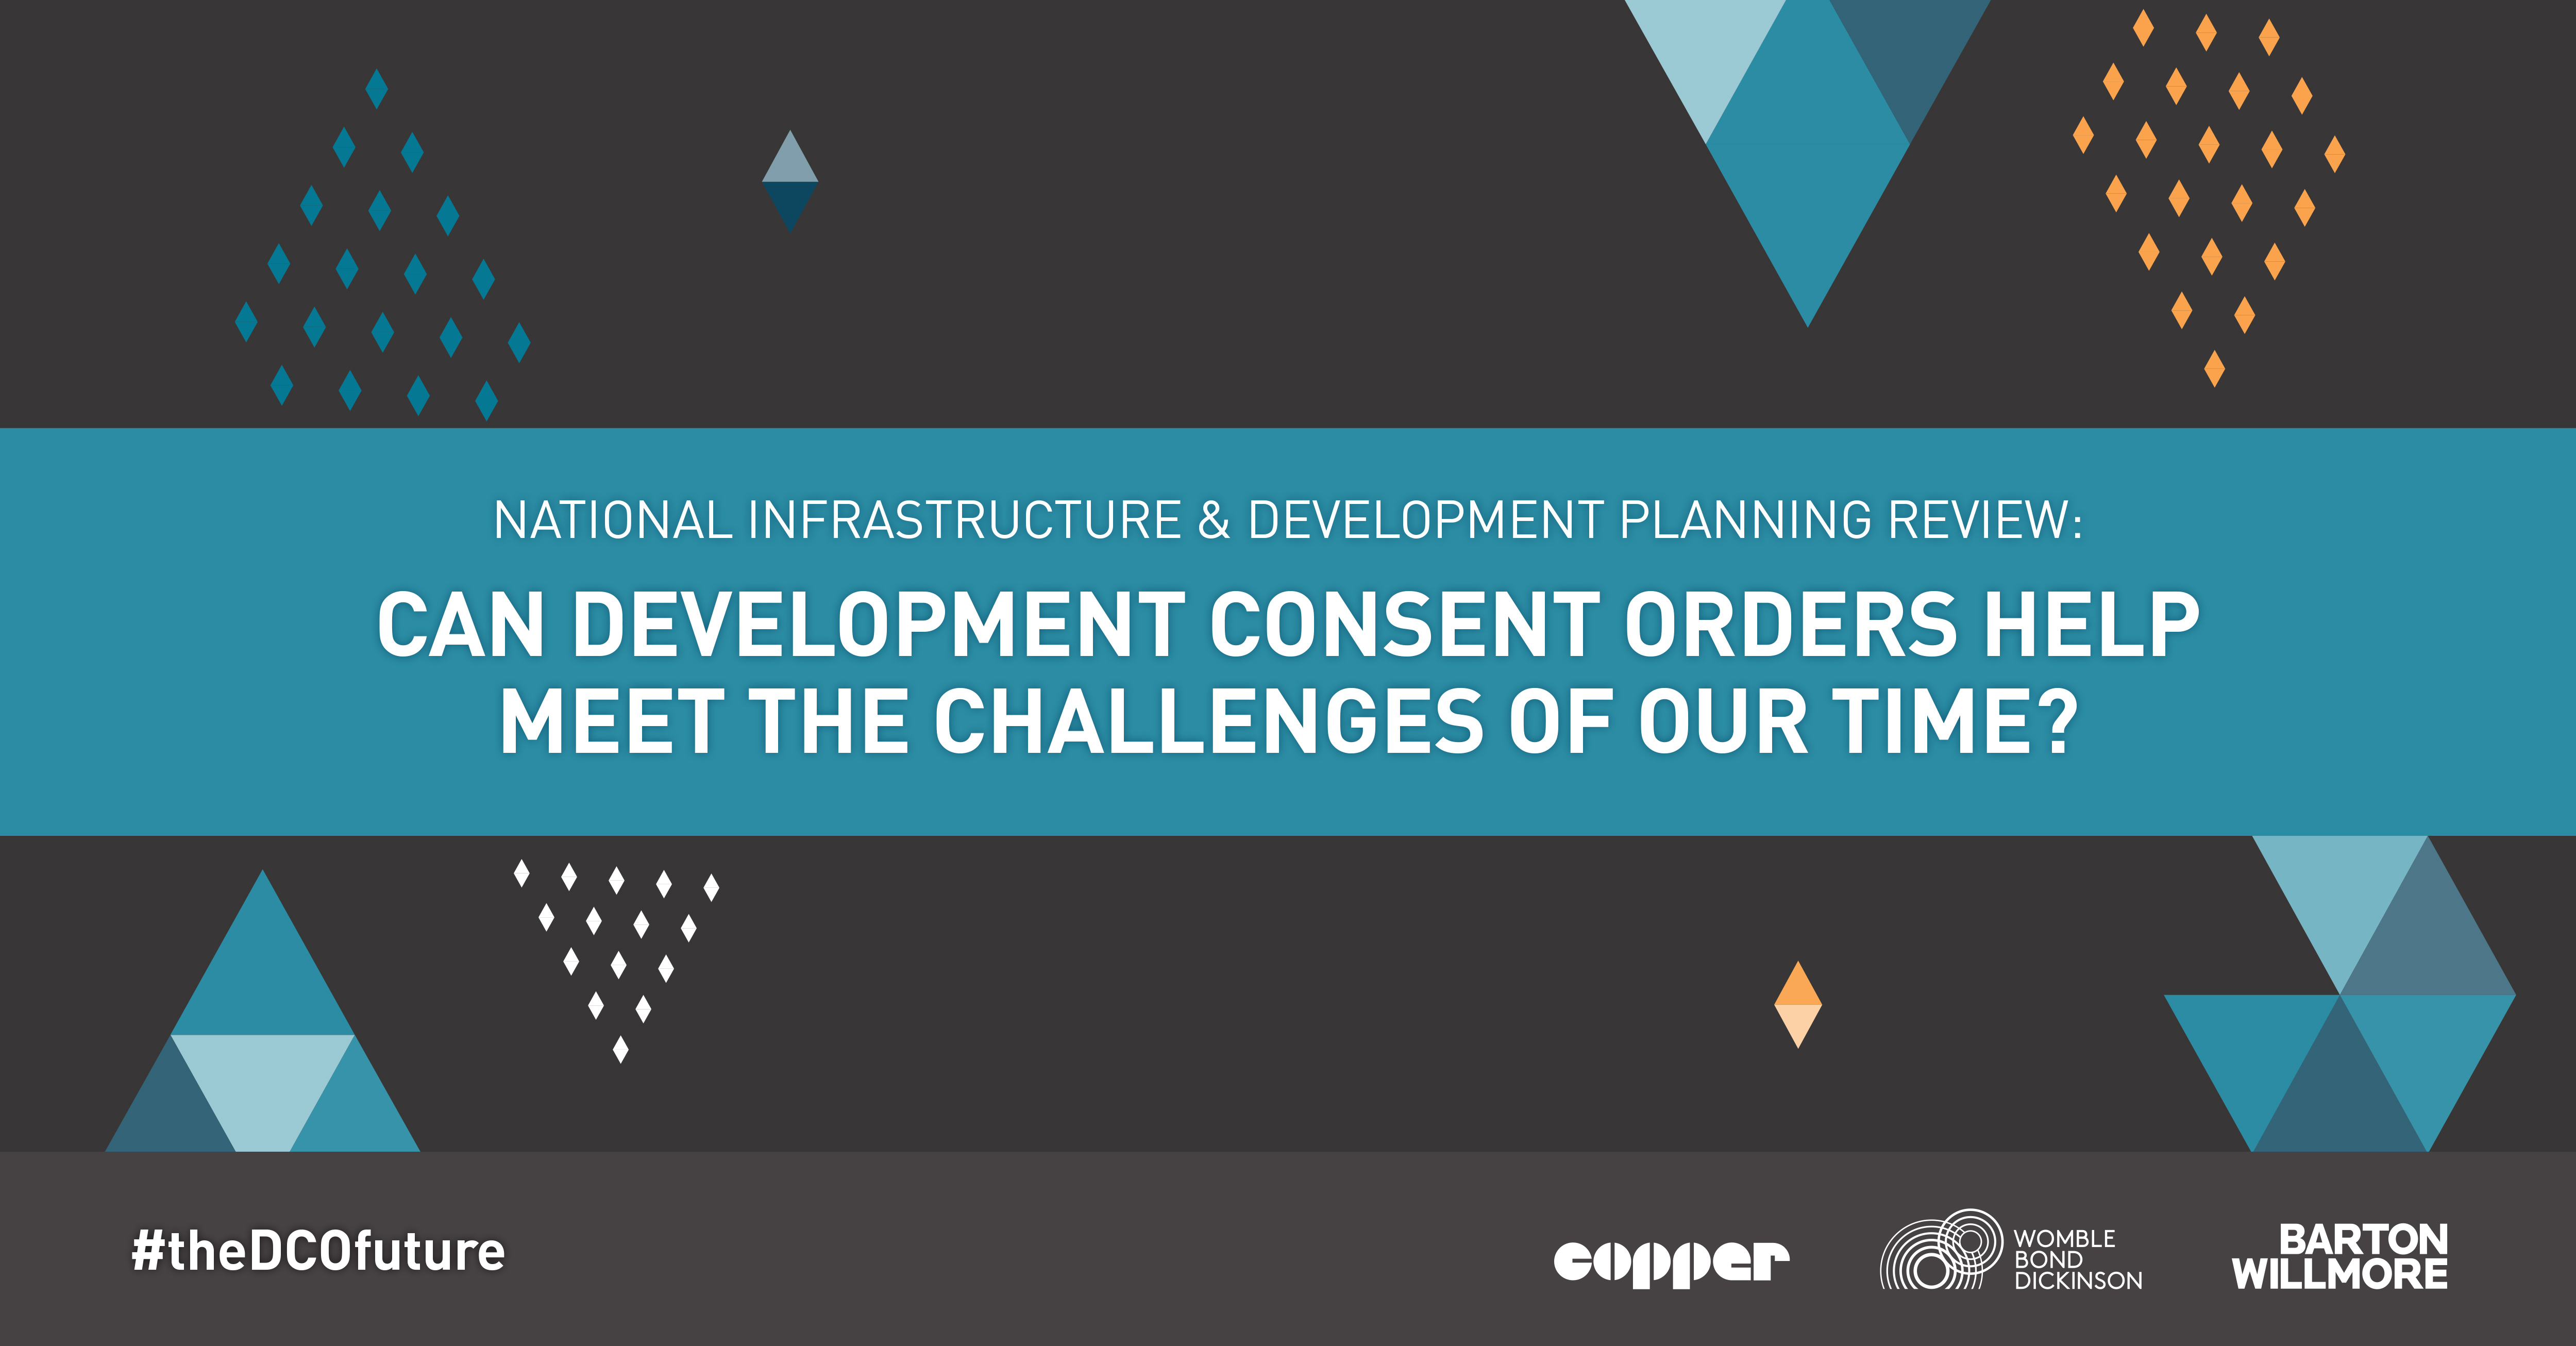 National Infrastructure & Development Planning Review